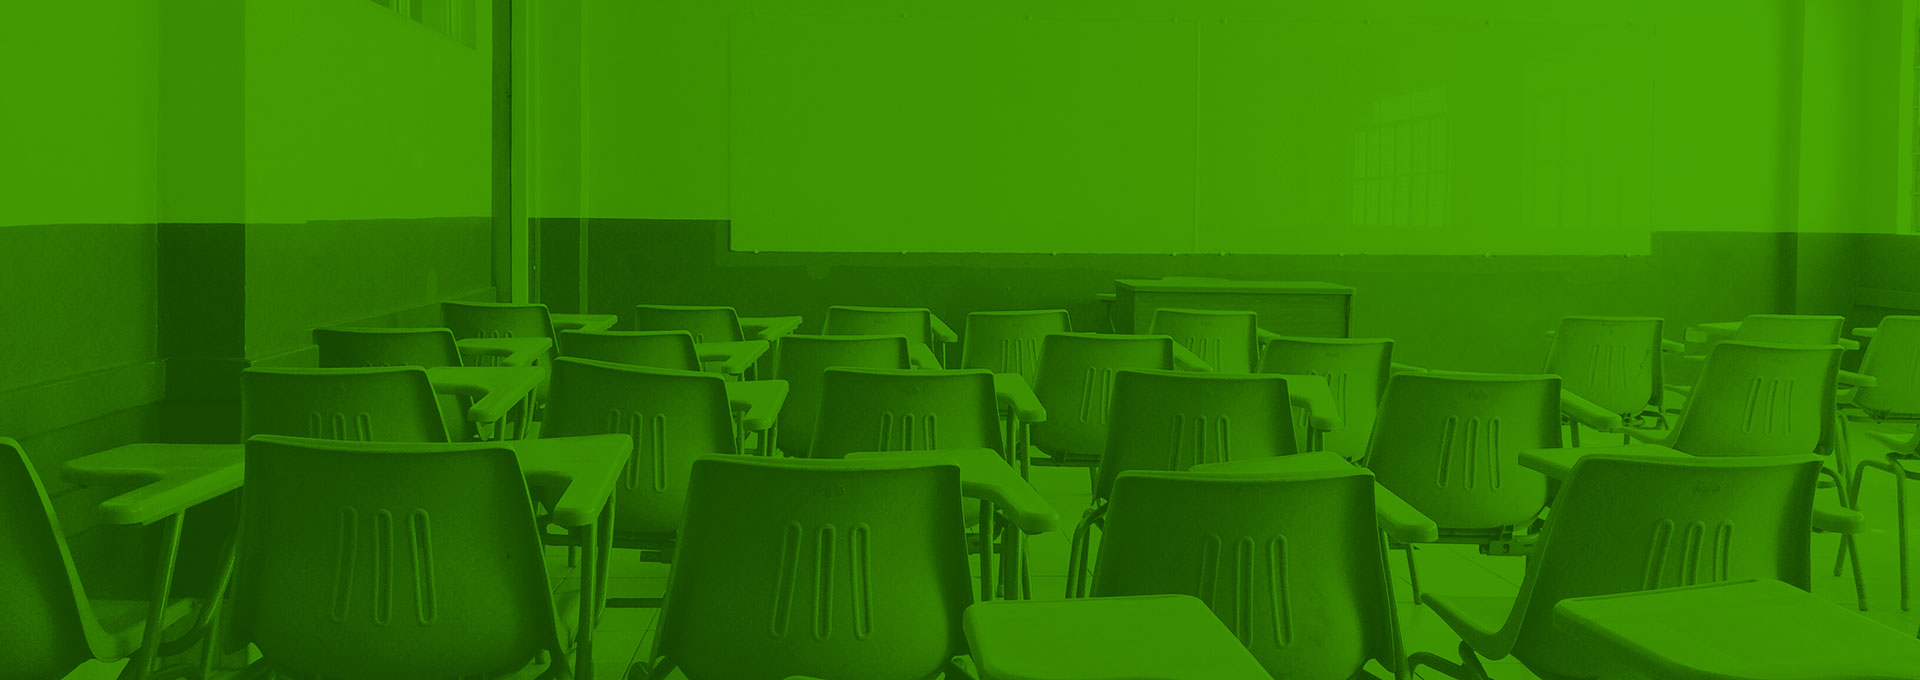 School Specialty: A Look At Their Green Business Journey and Success